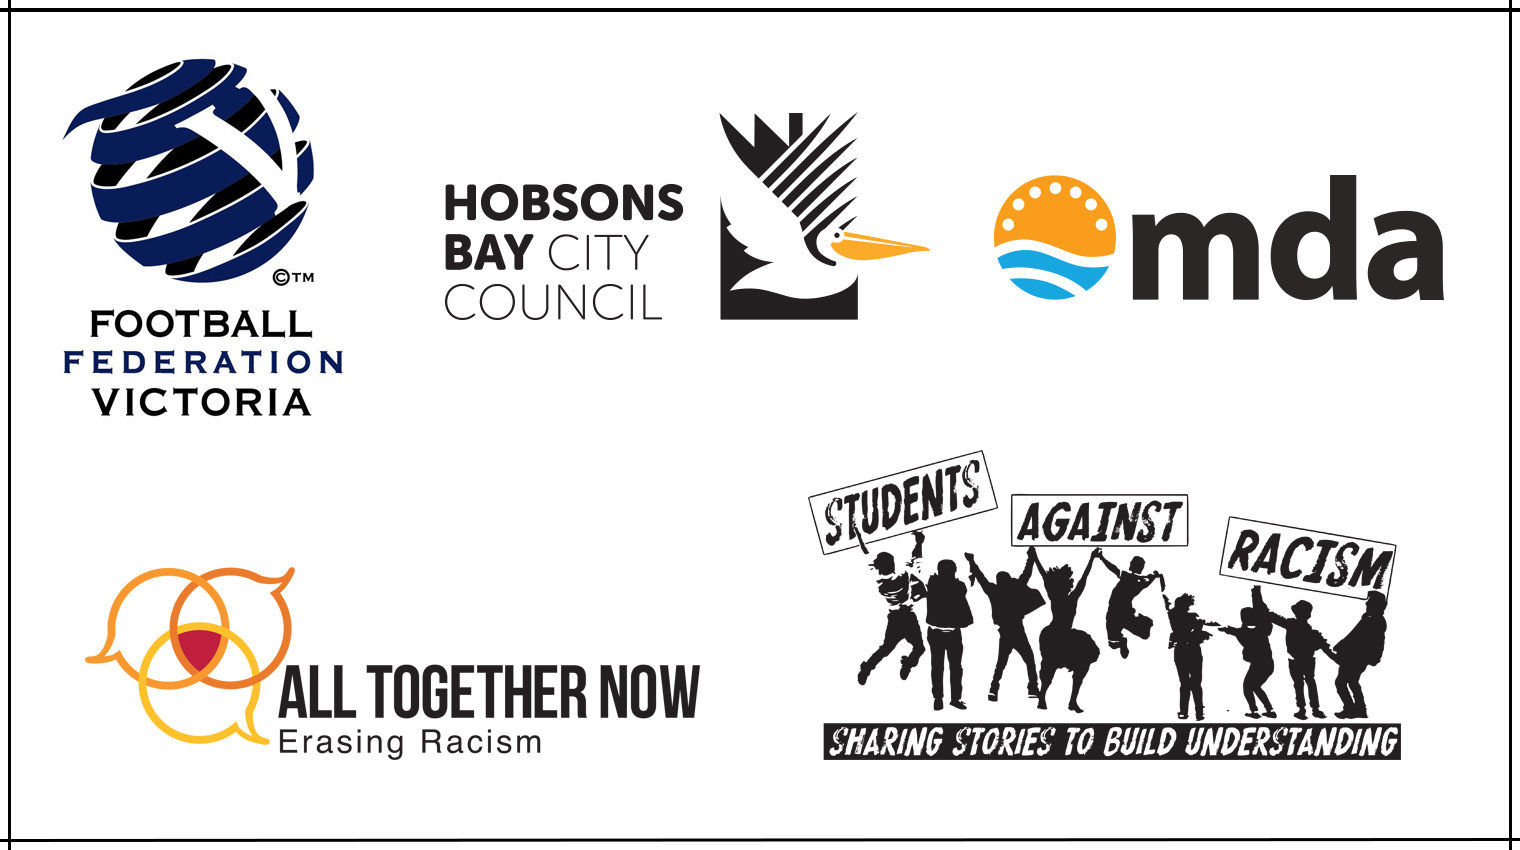 Logos of the 5 RISWM award finalists: Football Federation Victoria, Multicultural Development Agency, All together Now,  Hobsons Bay City Council and •Tasmanian Students Against Racism